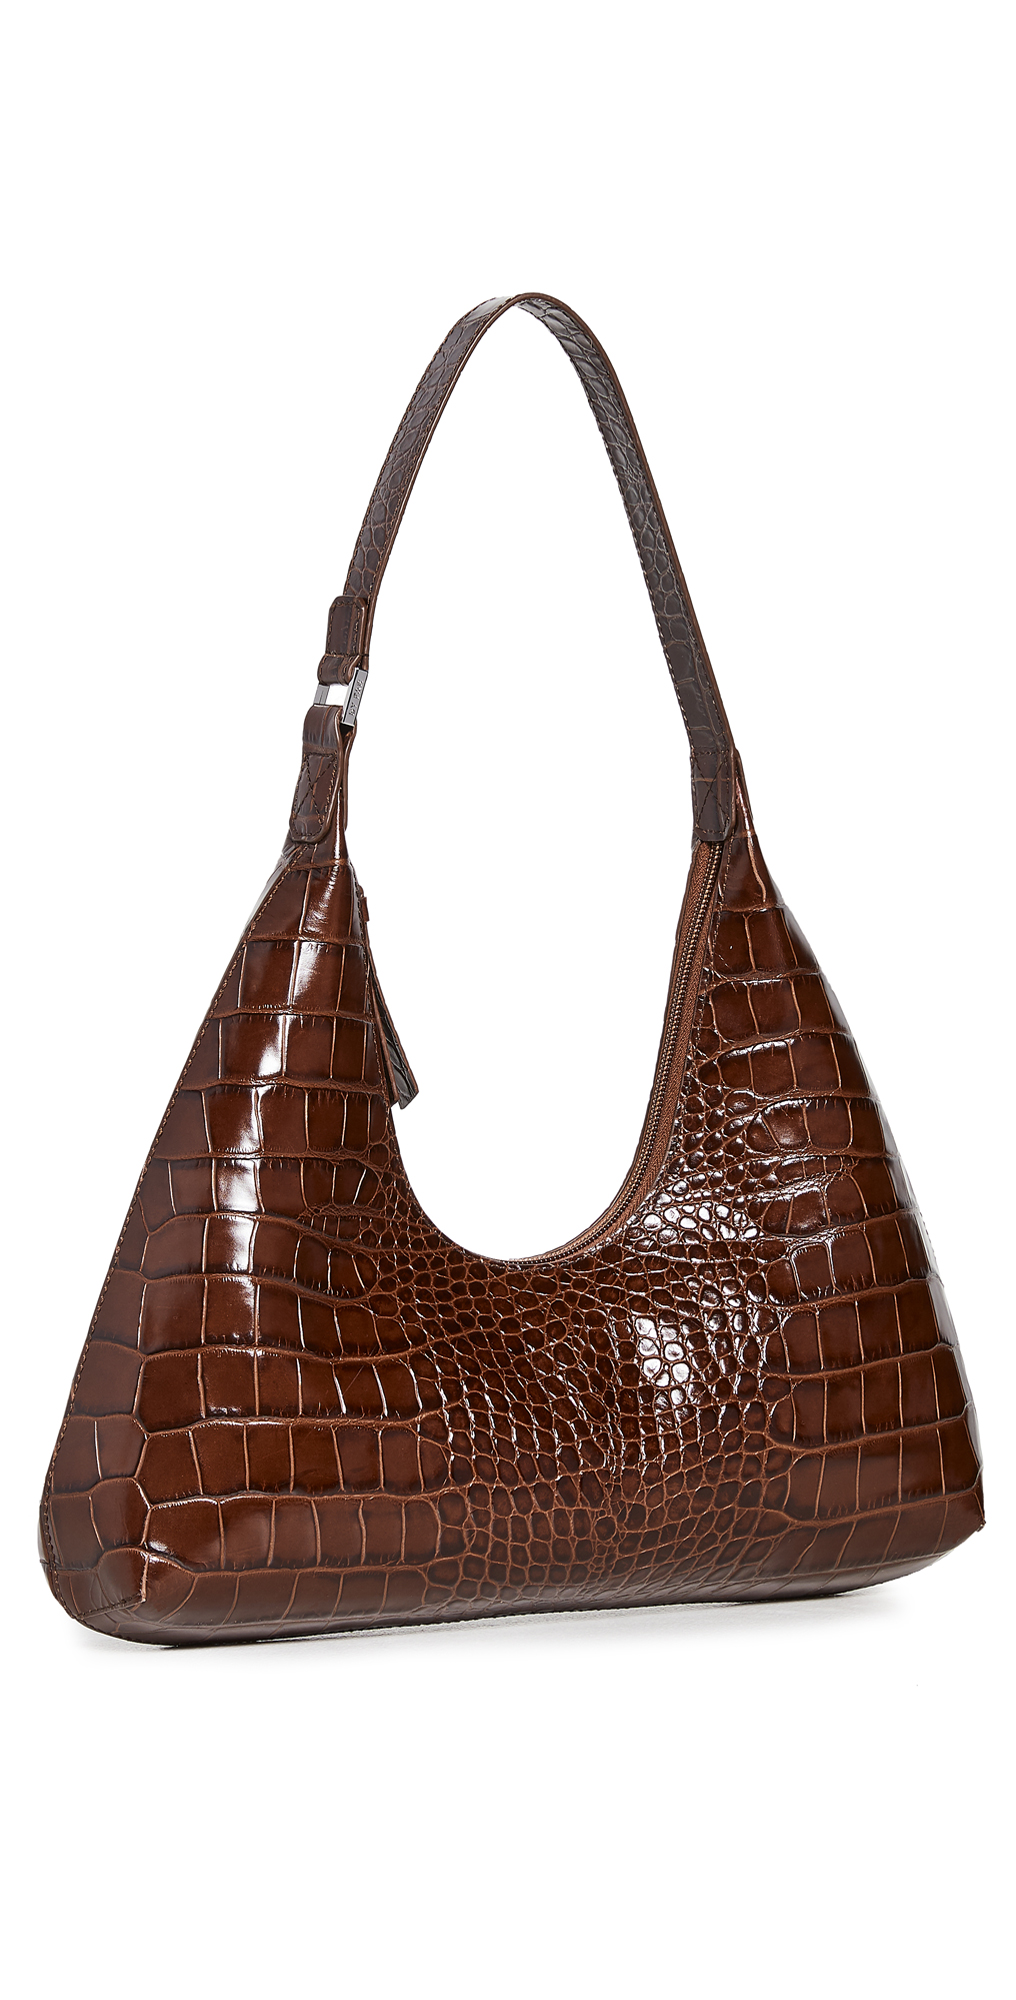 BY FAR Amber Nutella Croco Embossed Bag